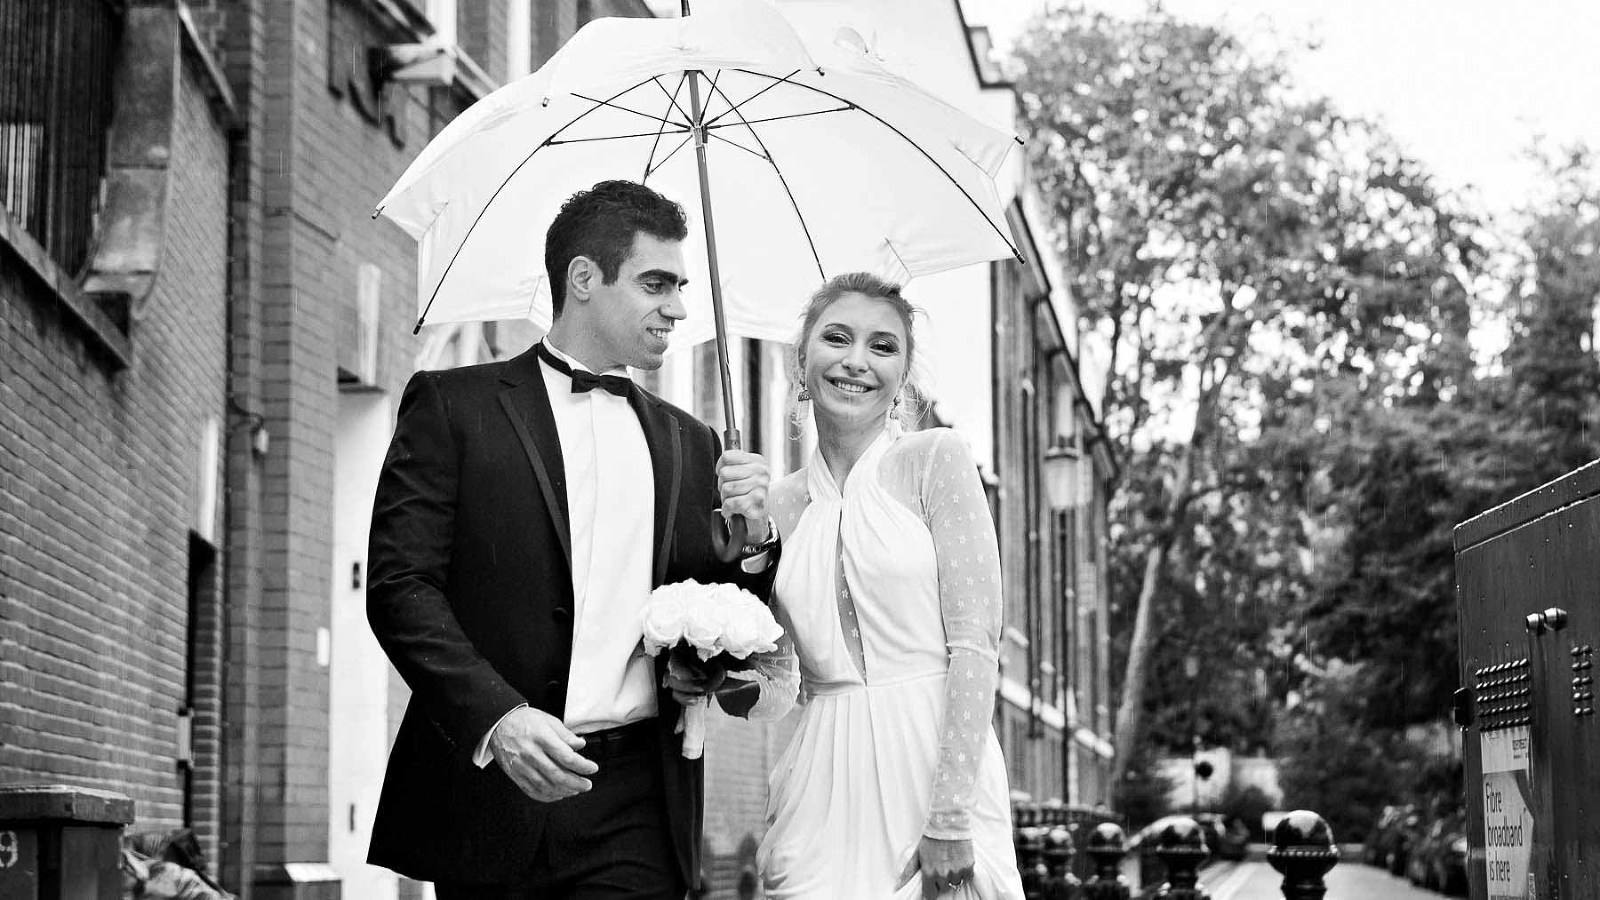 A bride and groom pose under a white umbrella for wedding portraits after their Chelsea wedding. The groom is holding the bride's bouquet for their wedding photos.